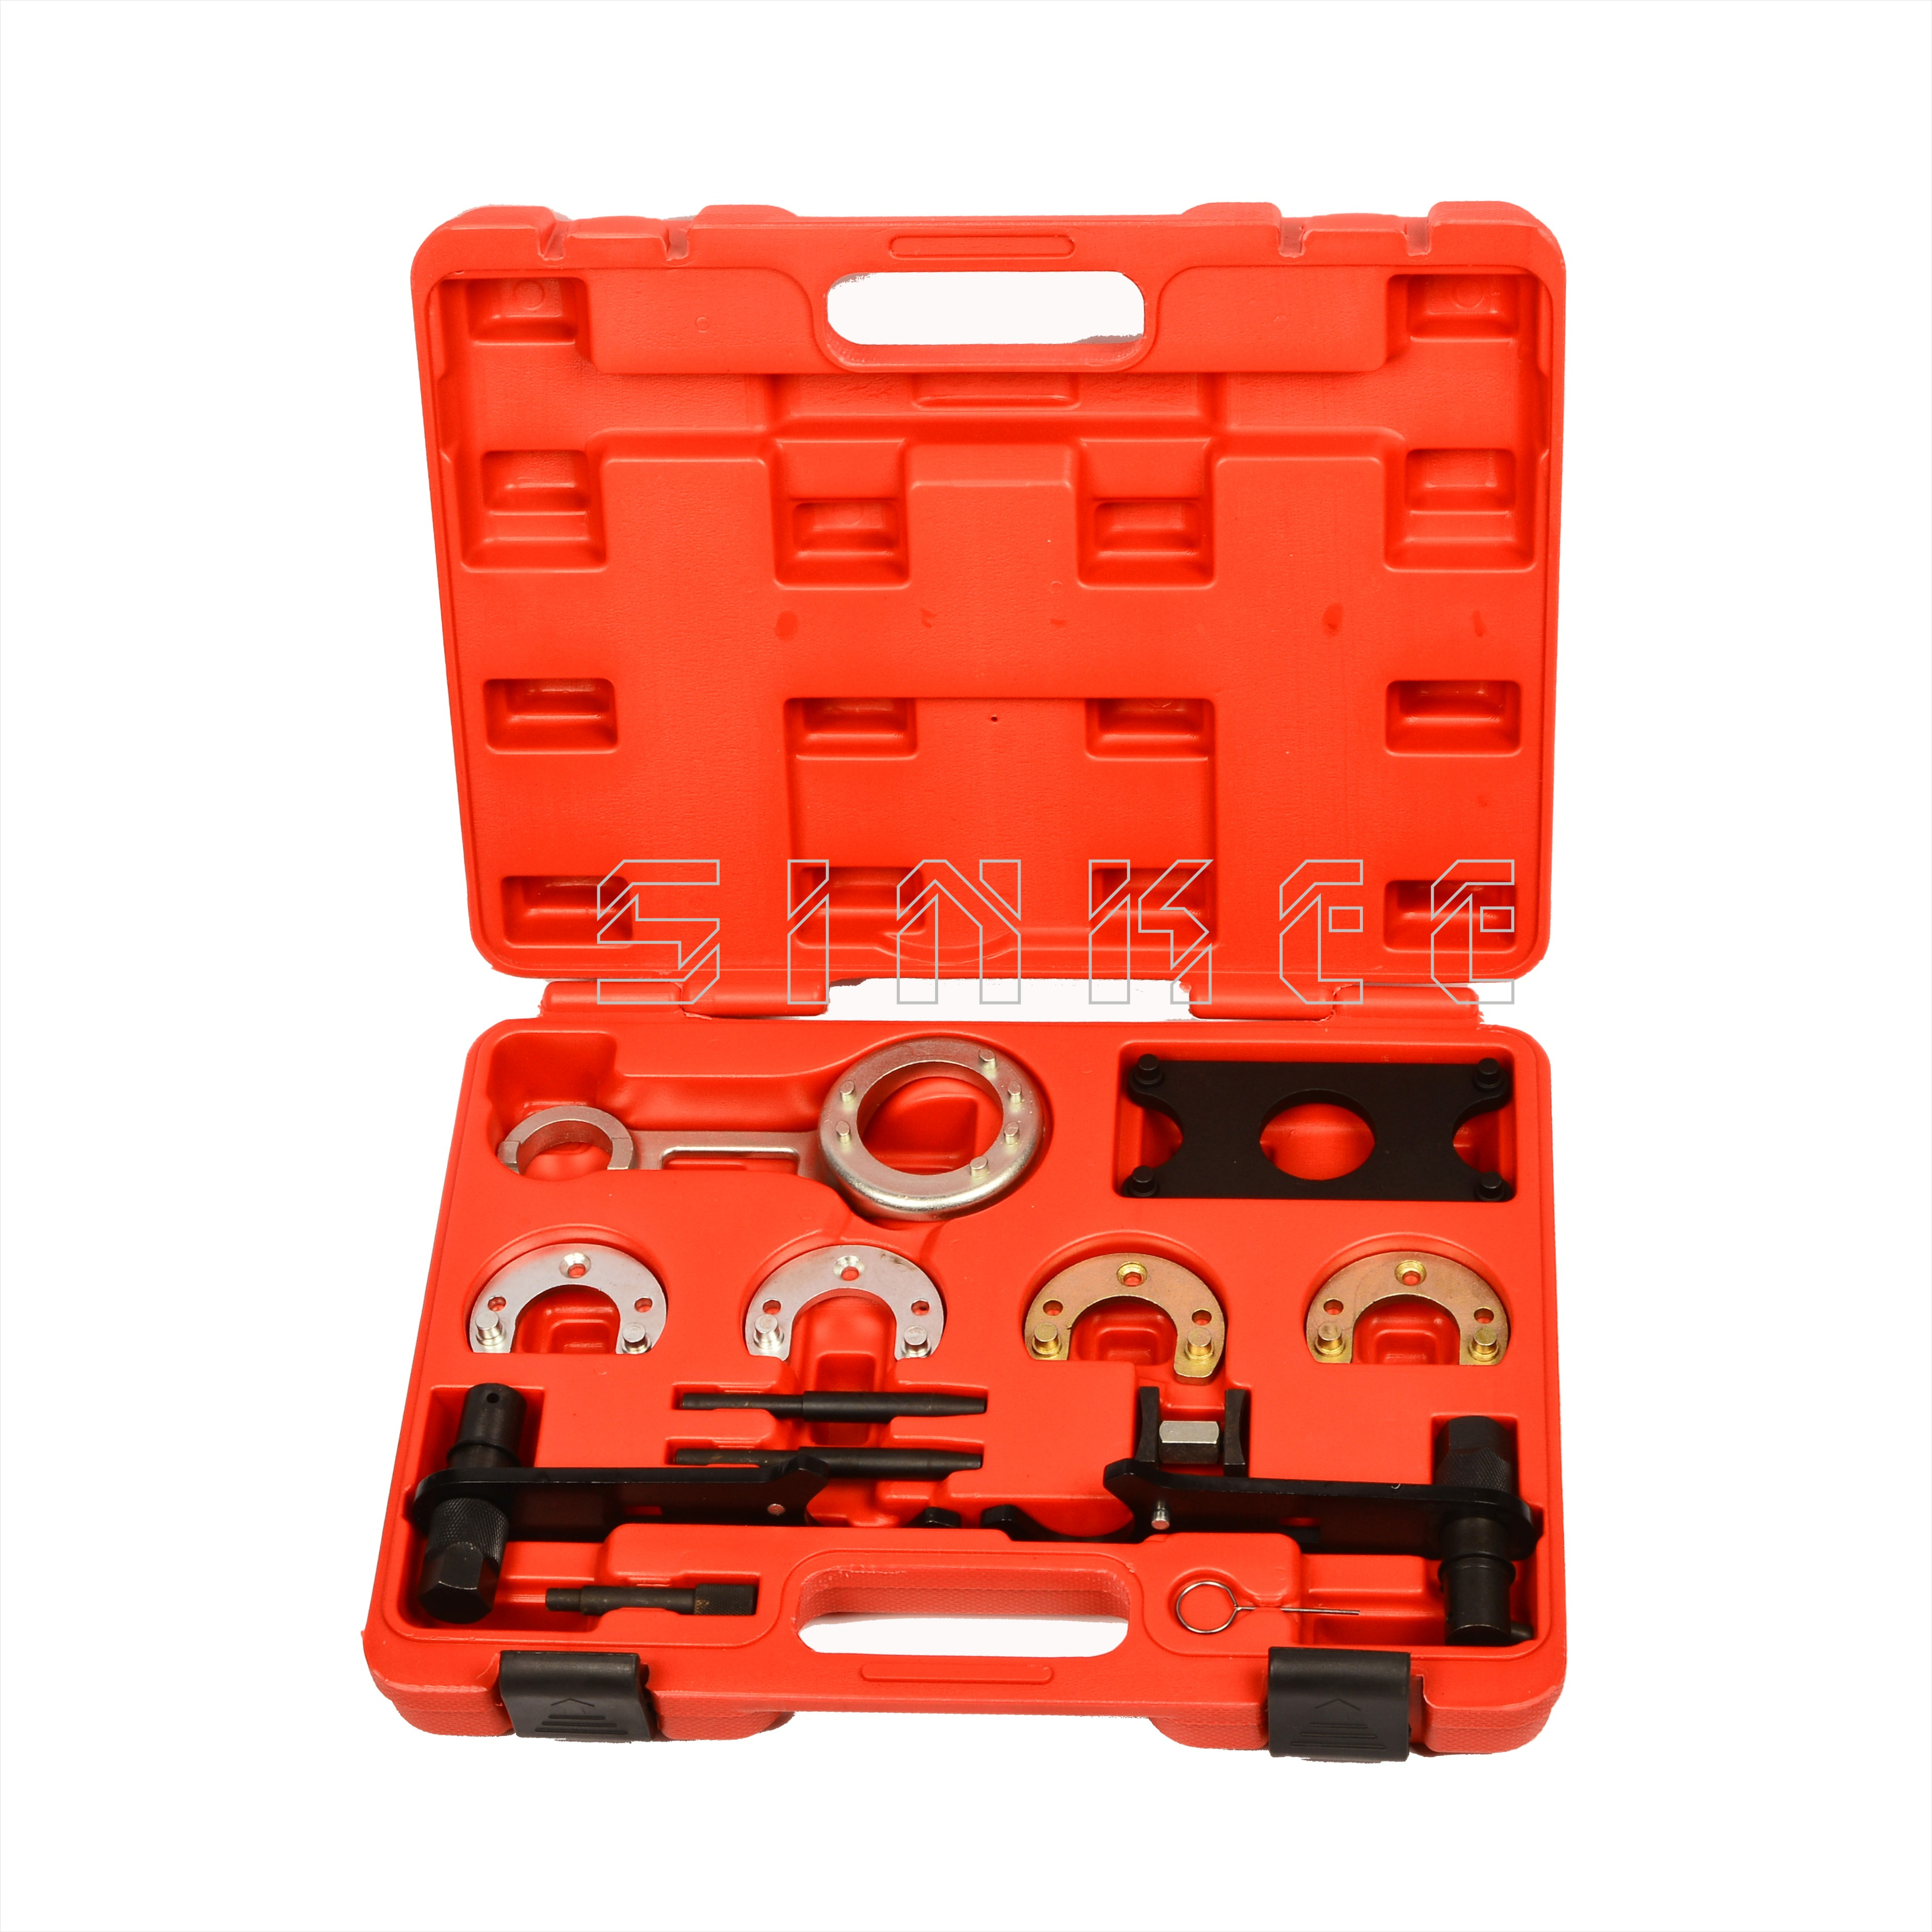 For Land Rover Freelander Rover Mgzt V6 Gas Petrol 2.0, 2.5 Engine Timing Tools Kit SK1334 utool engine timing tool set for land rover 3 0 3 5 4 0 4 2 v8 jaguar 97 08 engine